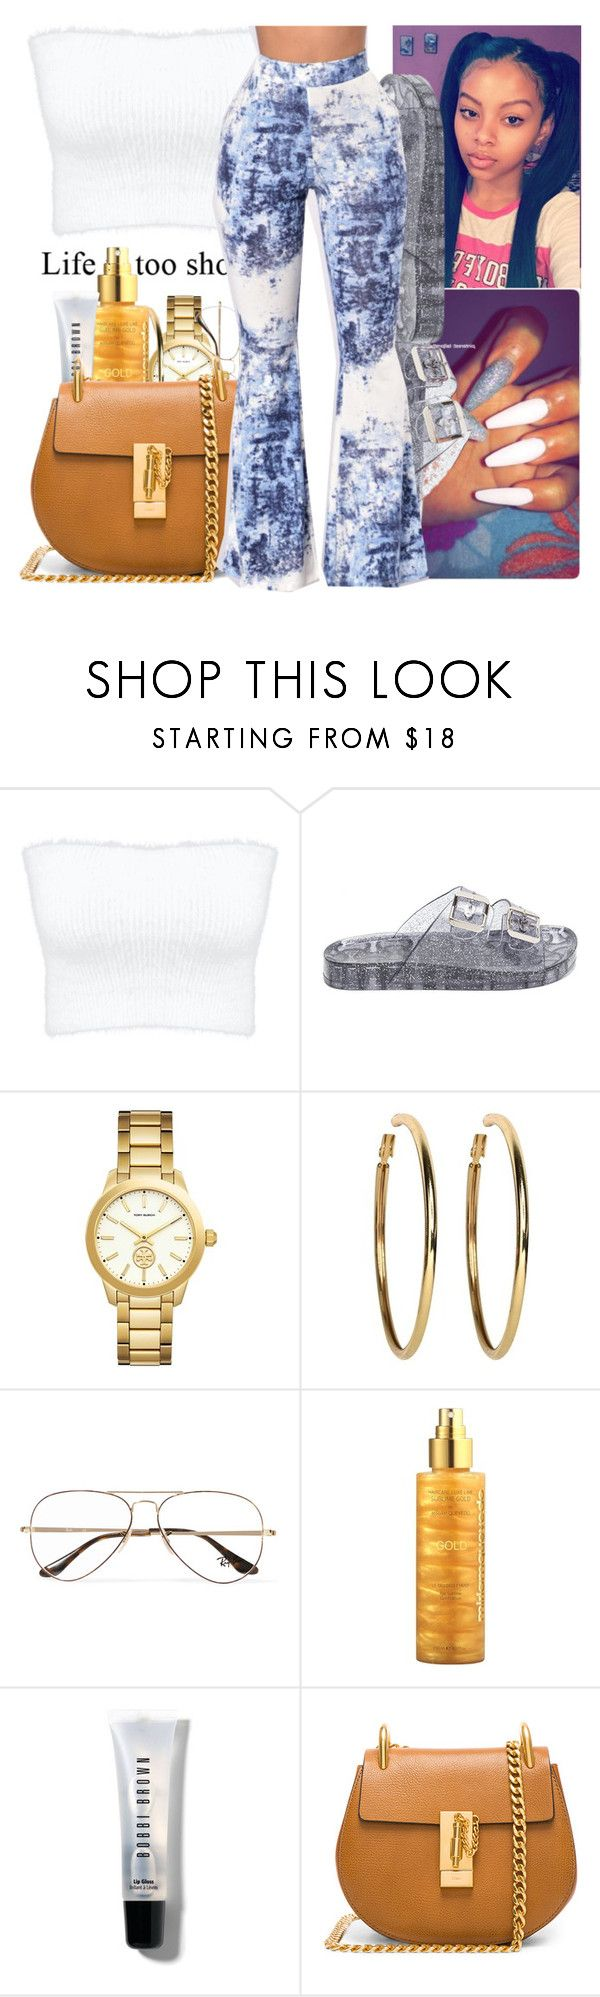 """Cardi B"" by littydee ❤ liked on Polyvore featuring GLITTER JELLY, Versace, Kenneth Jay Lane, Ray-Ban, Miriam Quevedo, Bobbi Brown Cosmetics and Chloé"